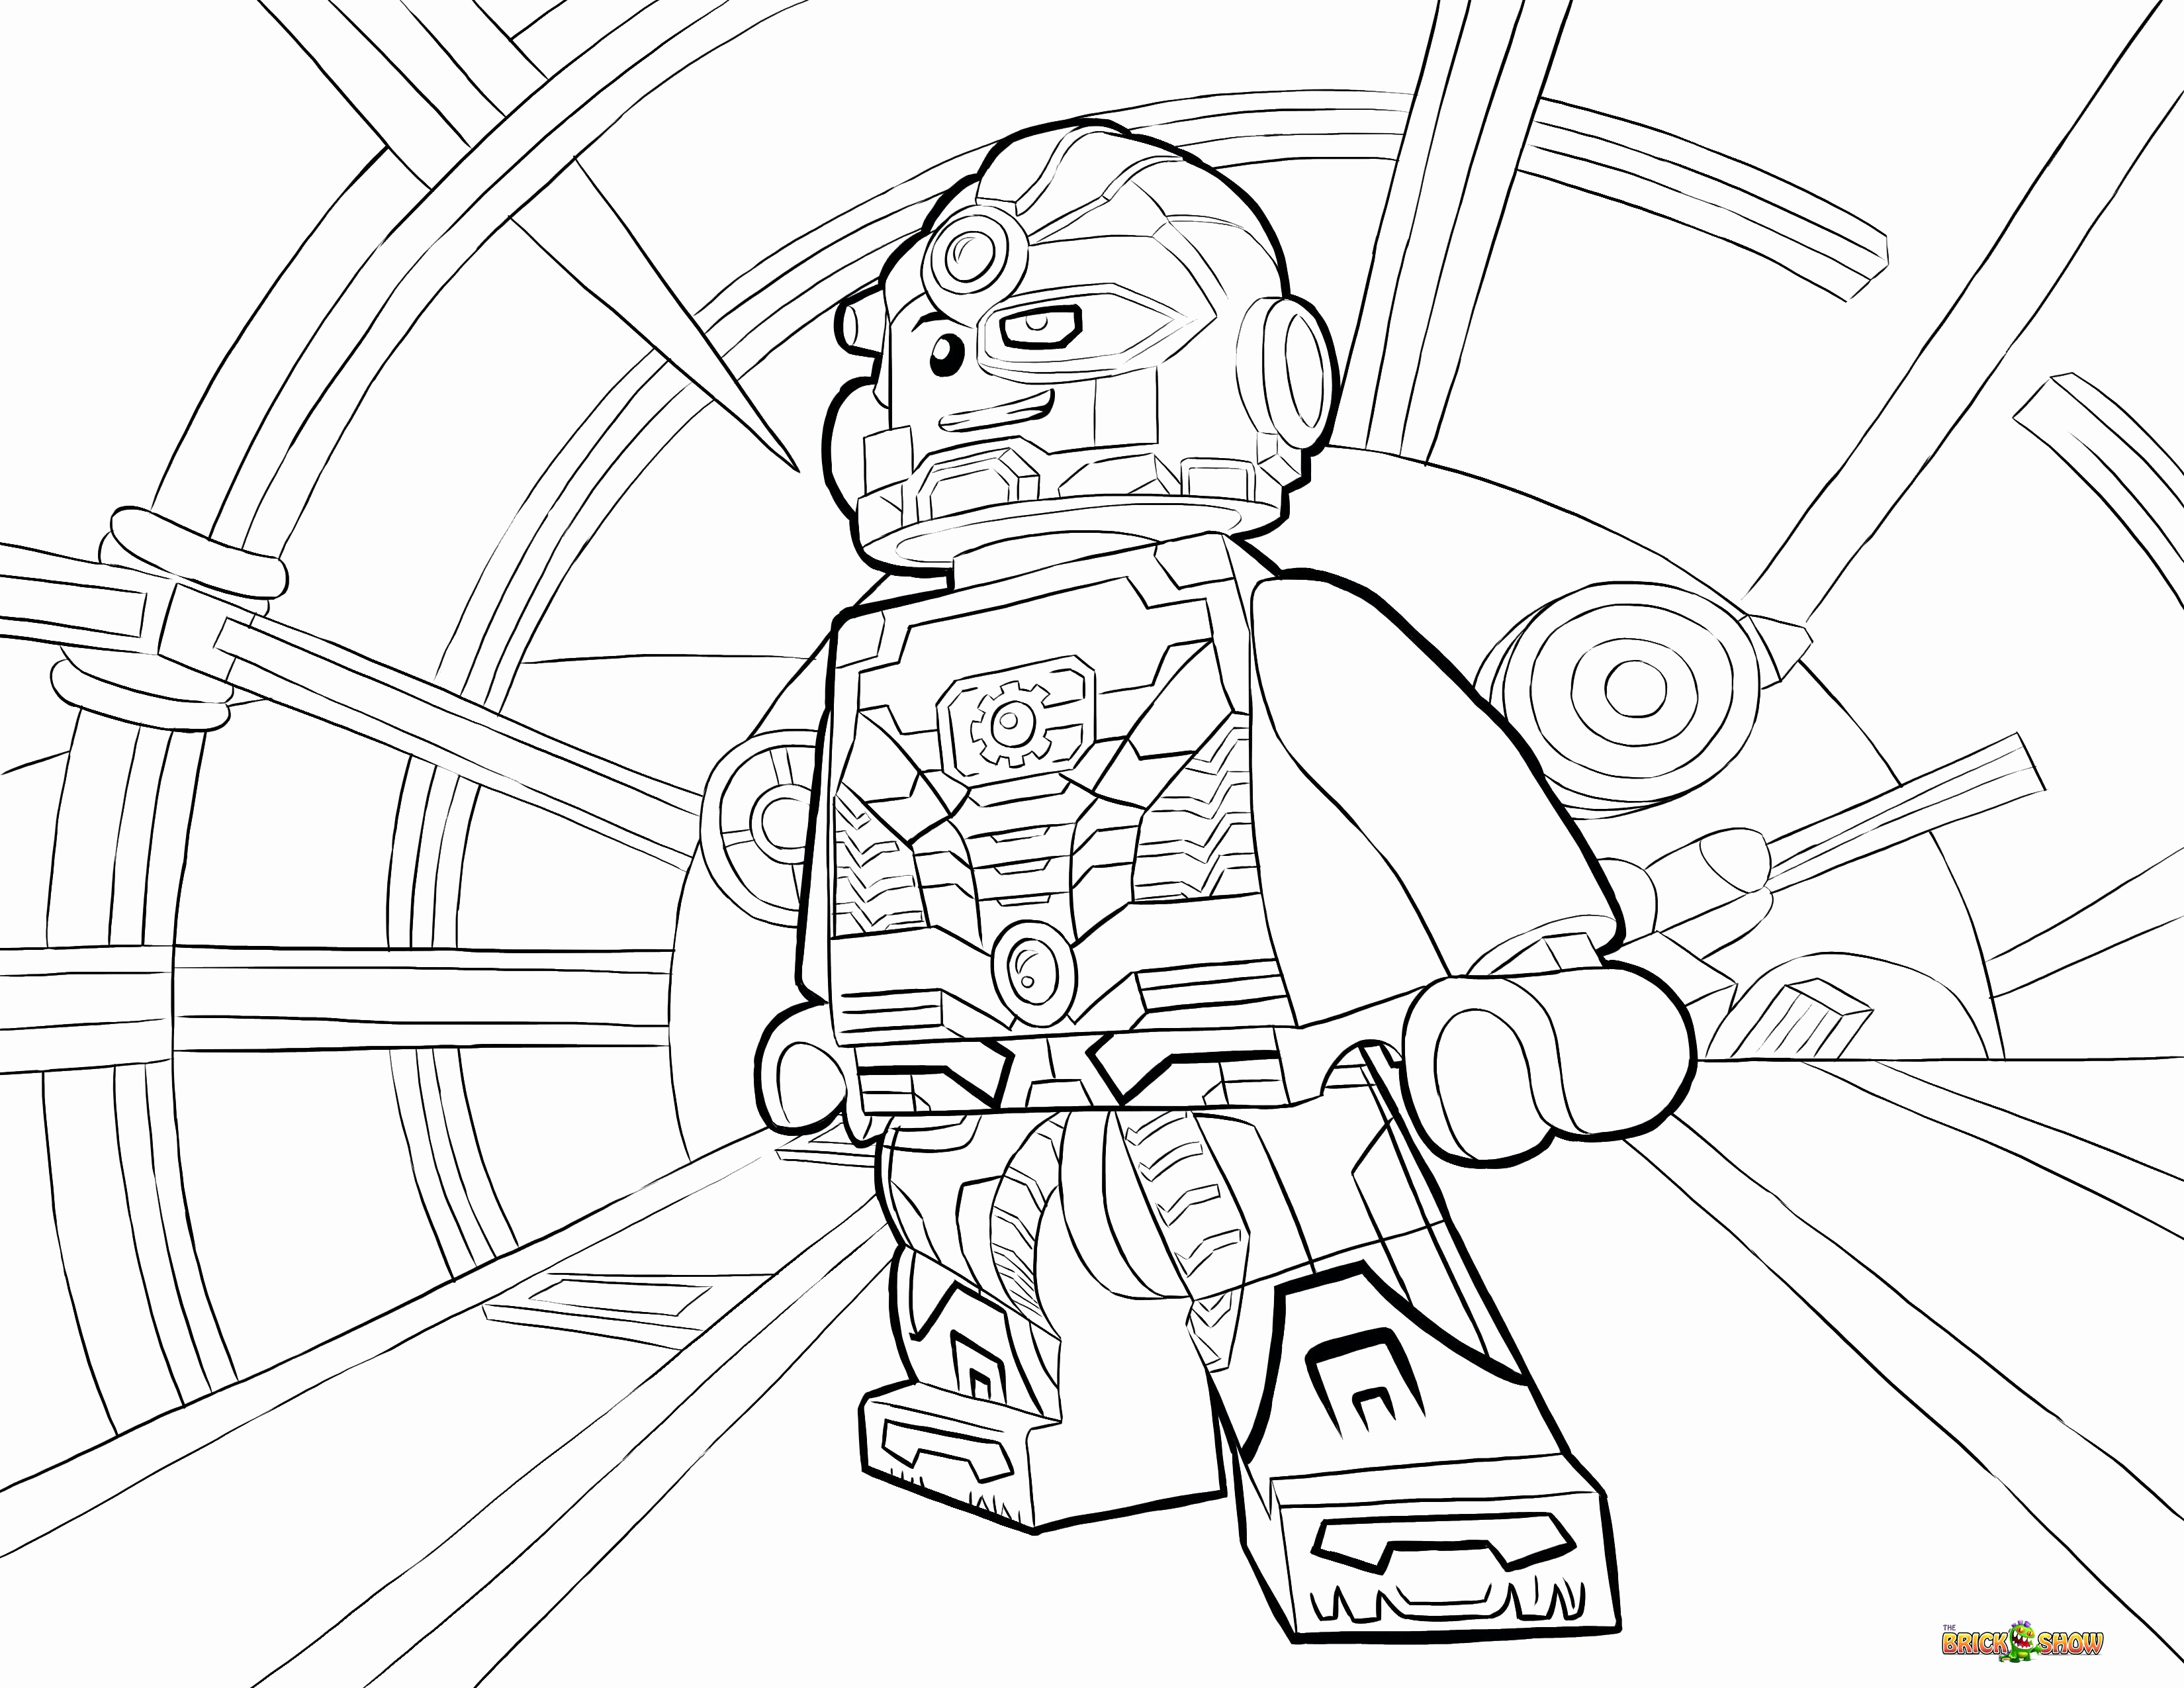 lego superheroes coloring pages Download-Superhero Coloring Pages Coloring Pages Terrific Superhero Coloring Pages Free Free Lego Superhero Coloring Pages 15-m